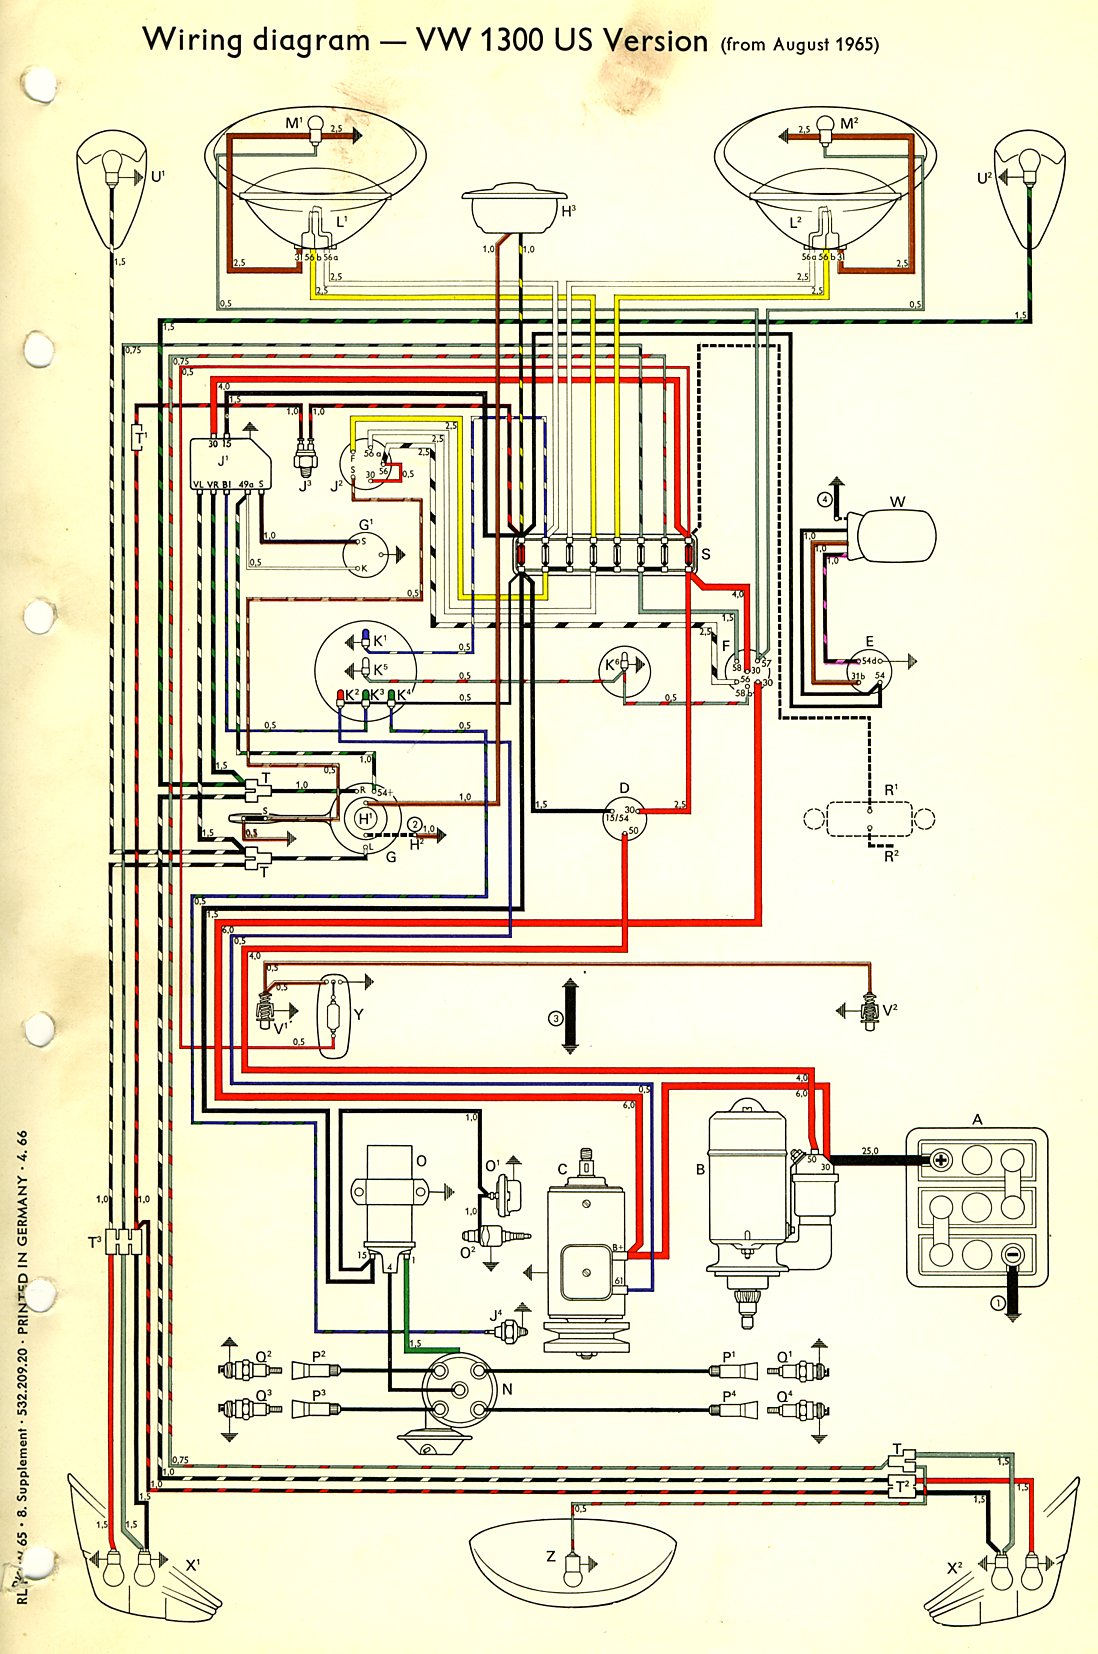 thesamba com type 1 wiring diagrams rh thesamba com 69 VW Beetle Wiring Diagram 69 VW Beetle Wiring Diagram